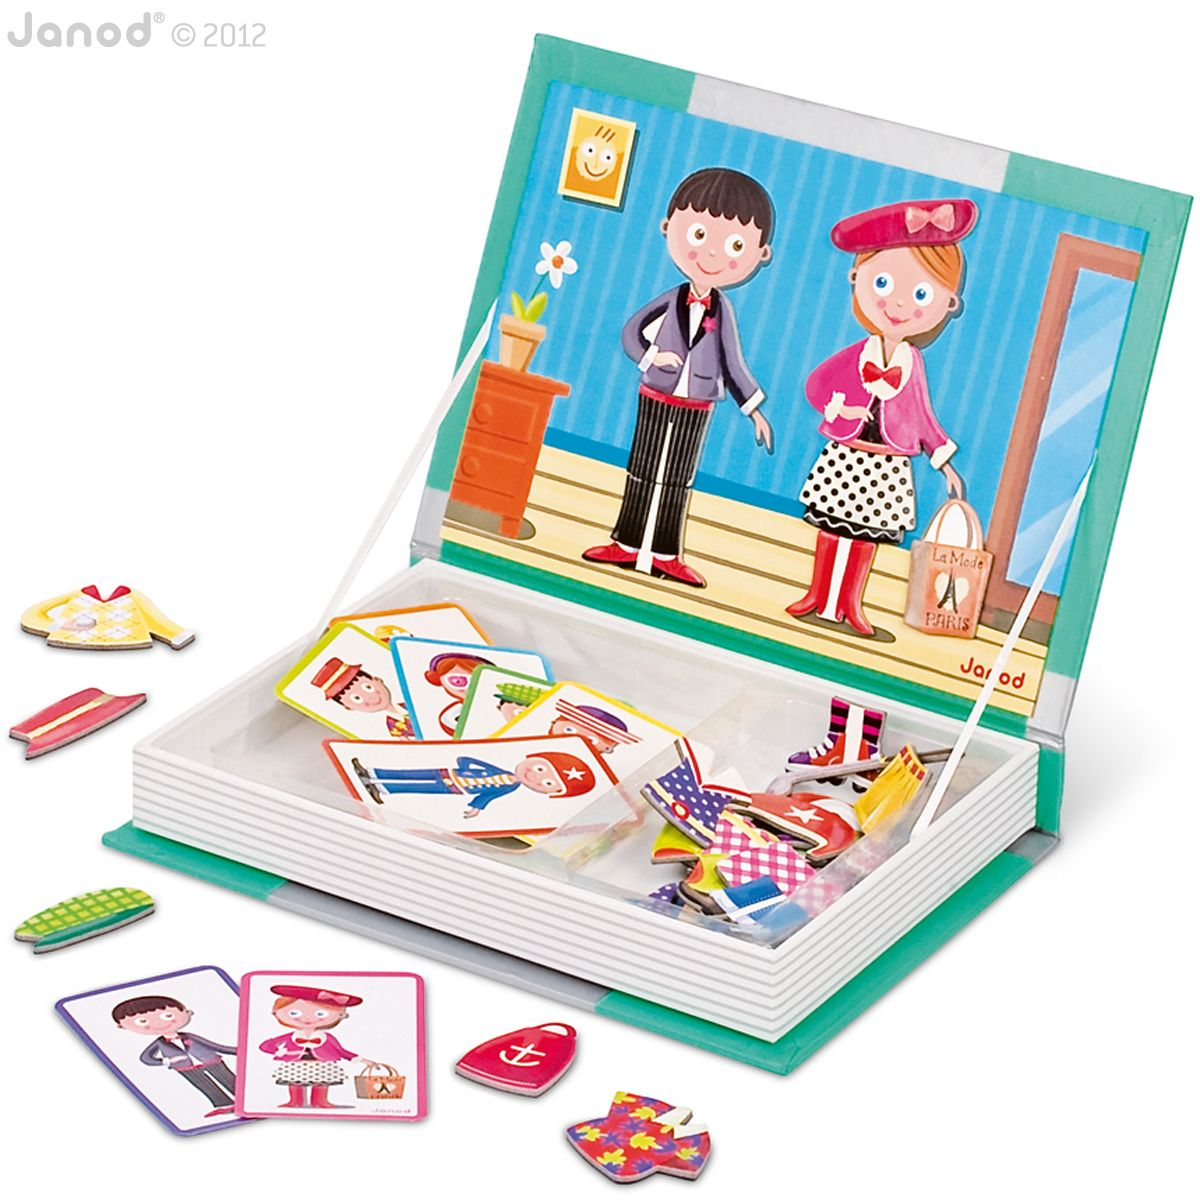 Pin By Donna Toy Box News On Janod Toys Pinterest Toy ~ Pizarras Magneticas El Corte Ingles